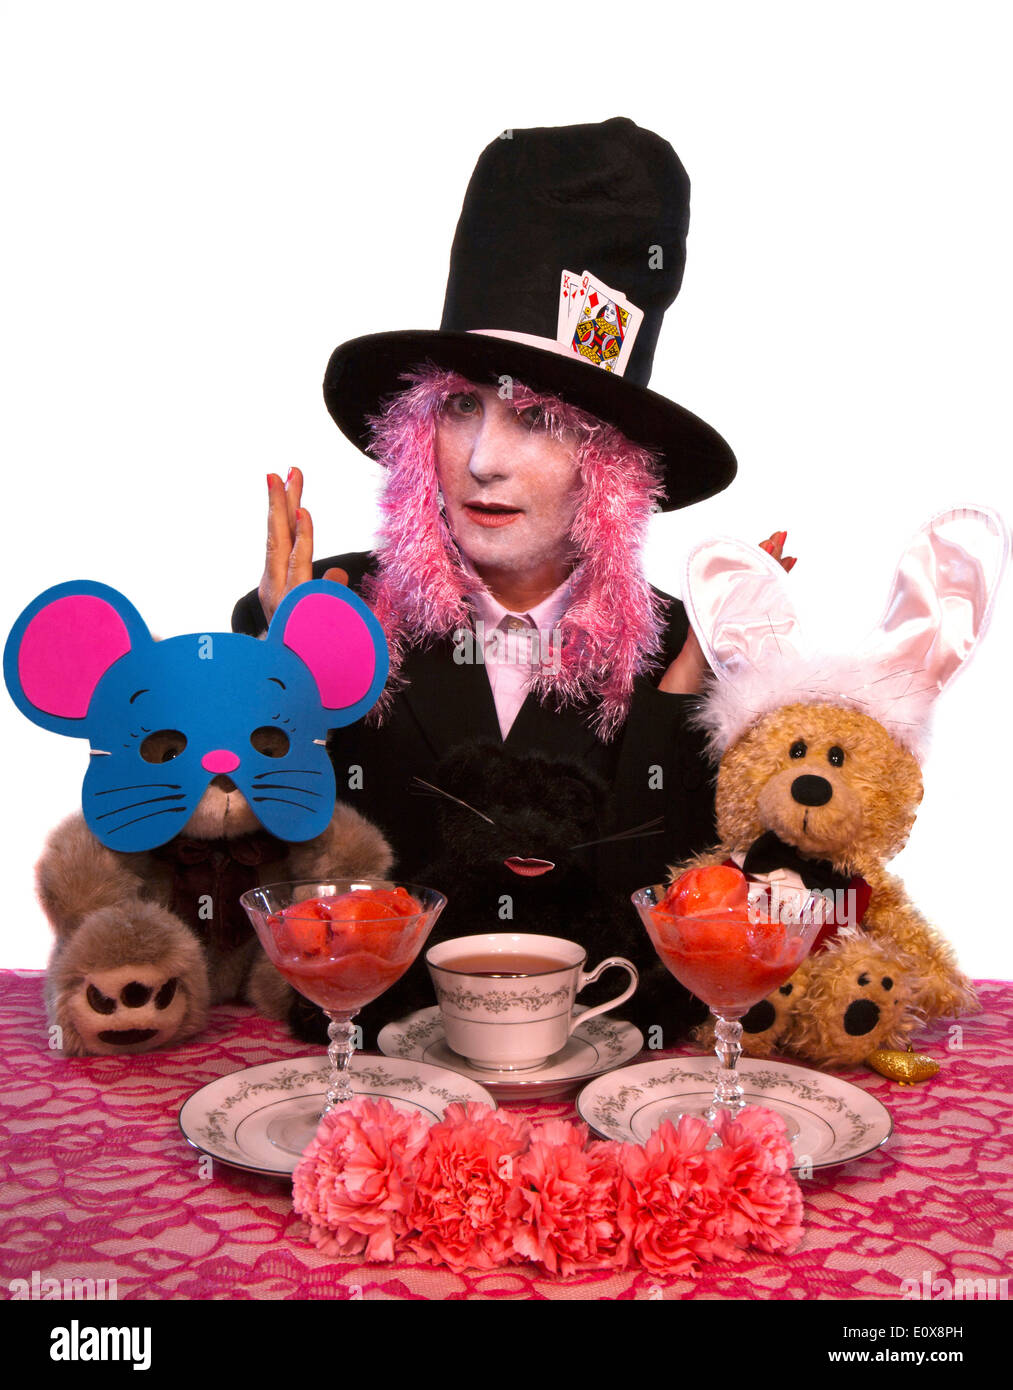 Alice In Wonderland Costume Party With The Characters Mad Hatter Stock Photo Alamy